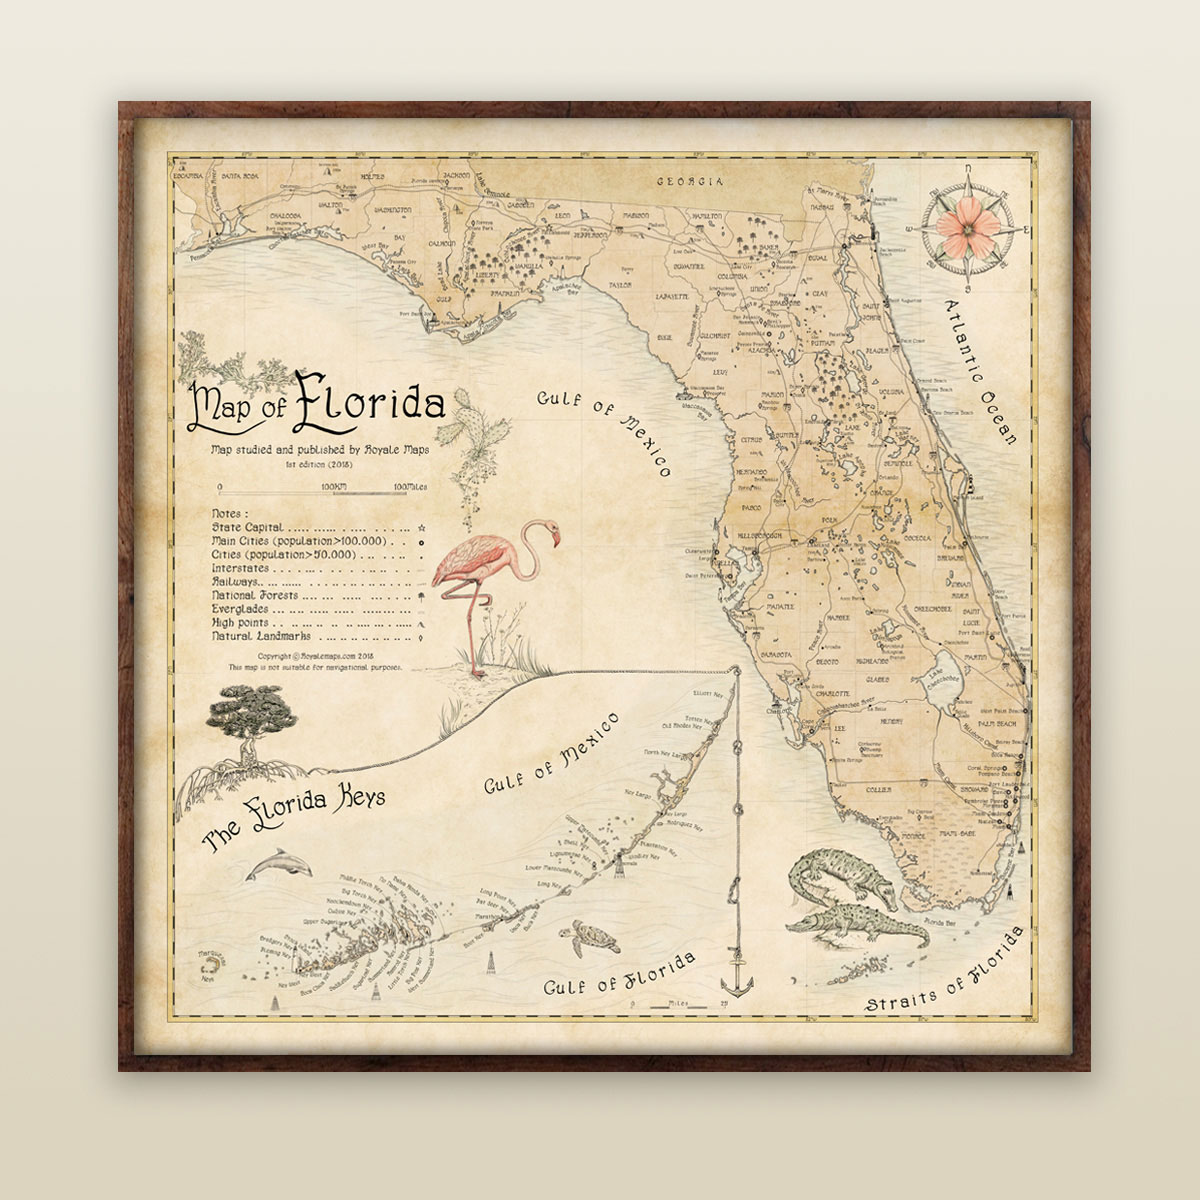 Map of Florida with Keys